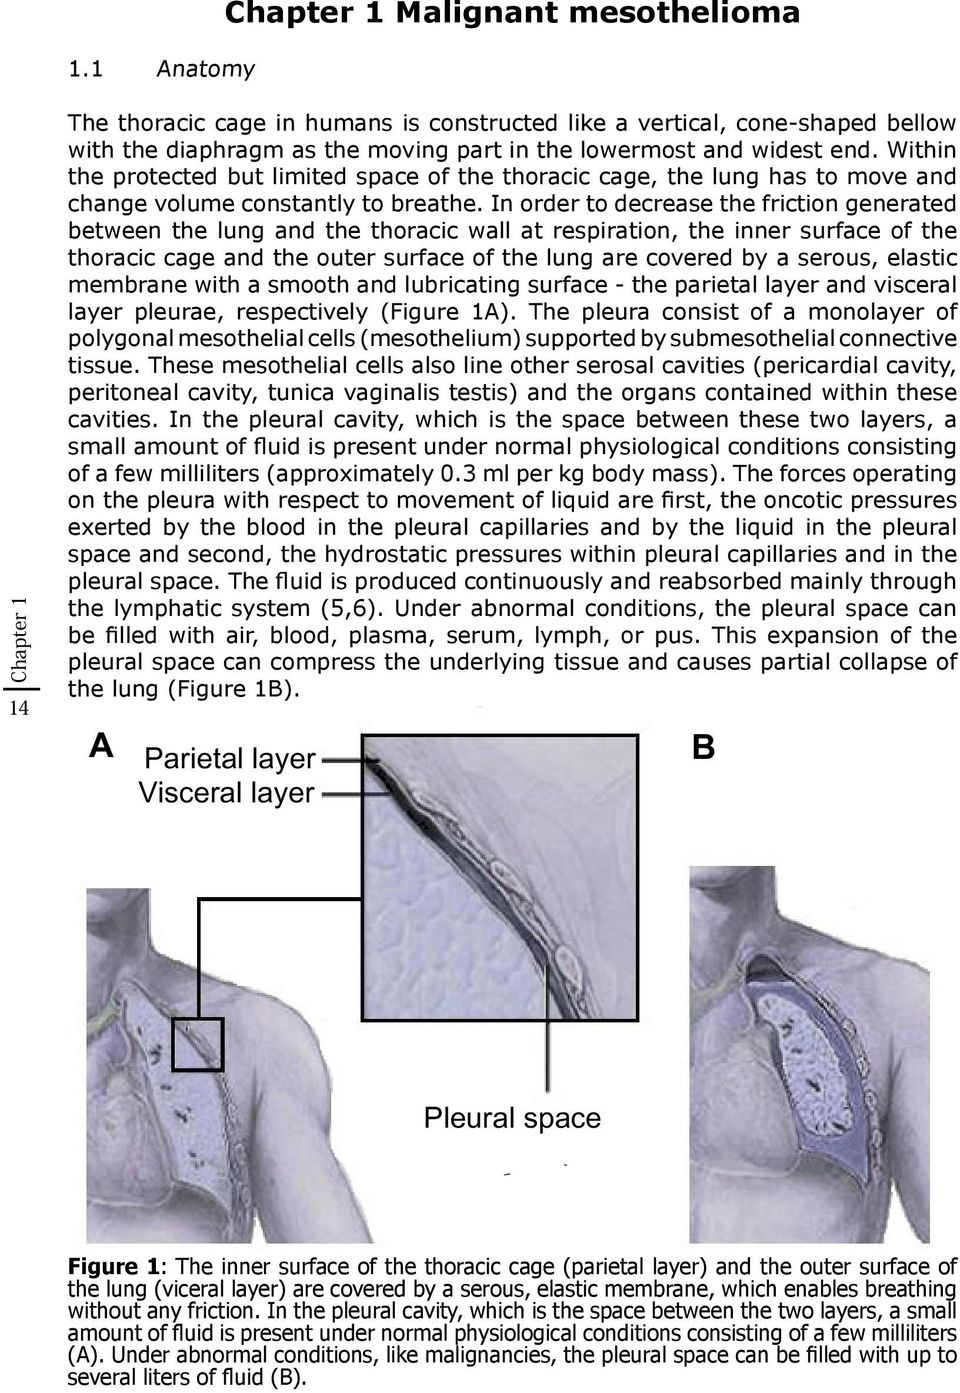 In order to decrease the friction generated between the lung and the thoracic wall at respiration, the inner surface of the thoracic cage and the outer surface of the lung are covered by a serous,